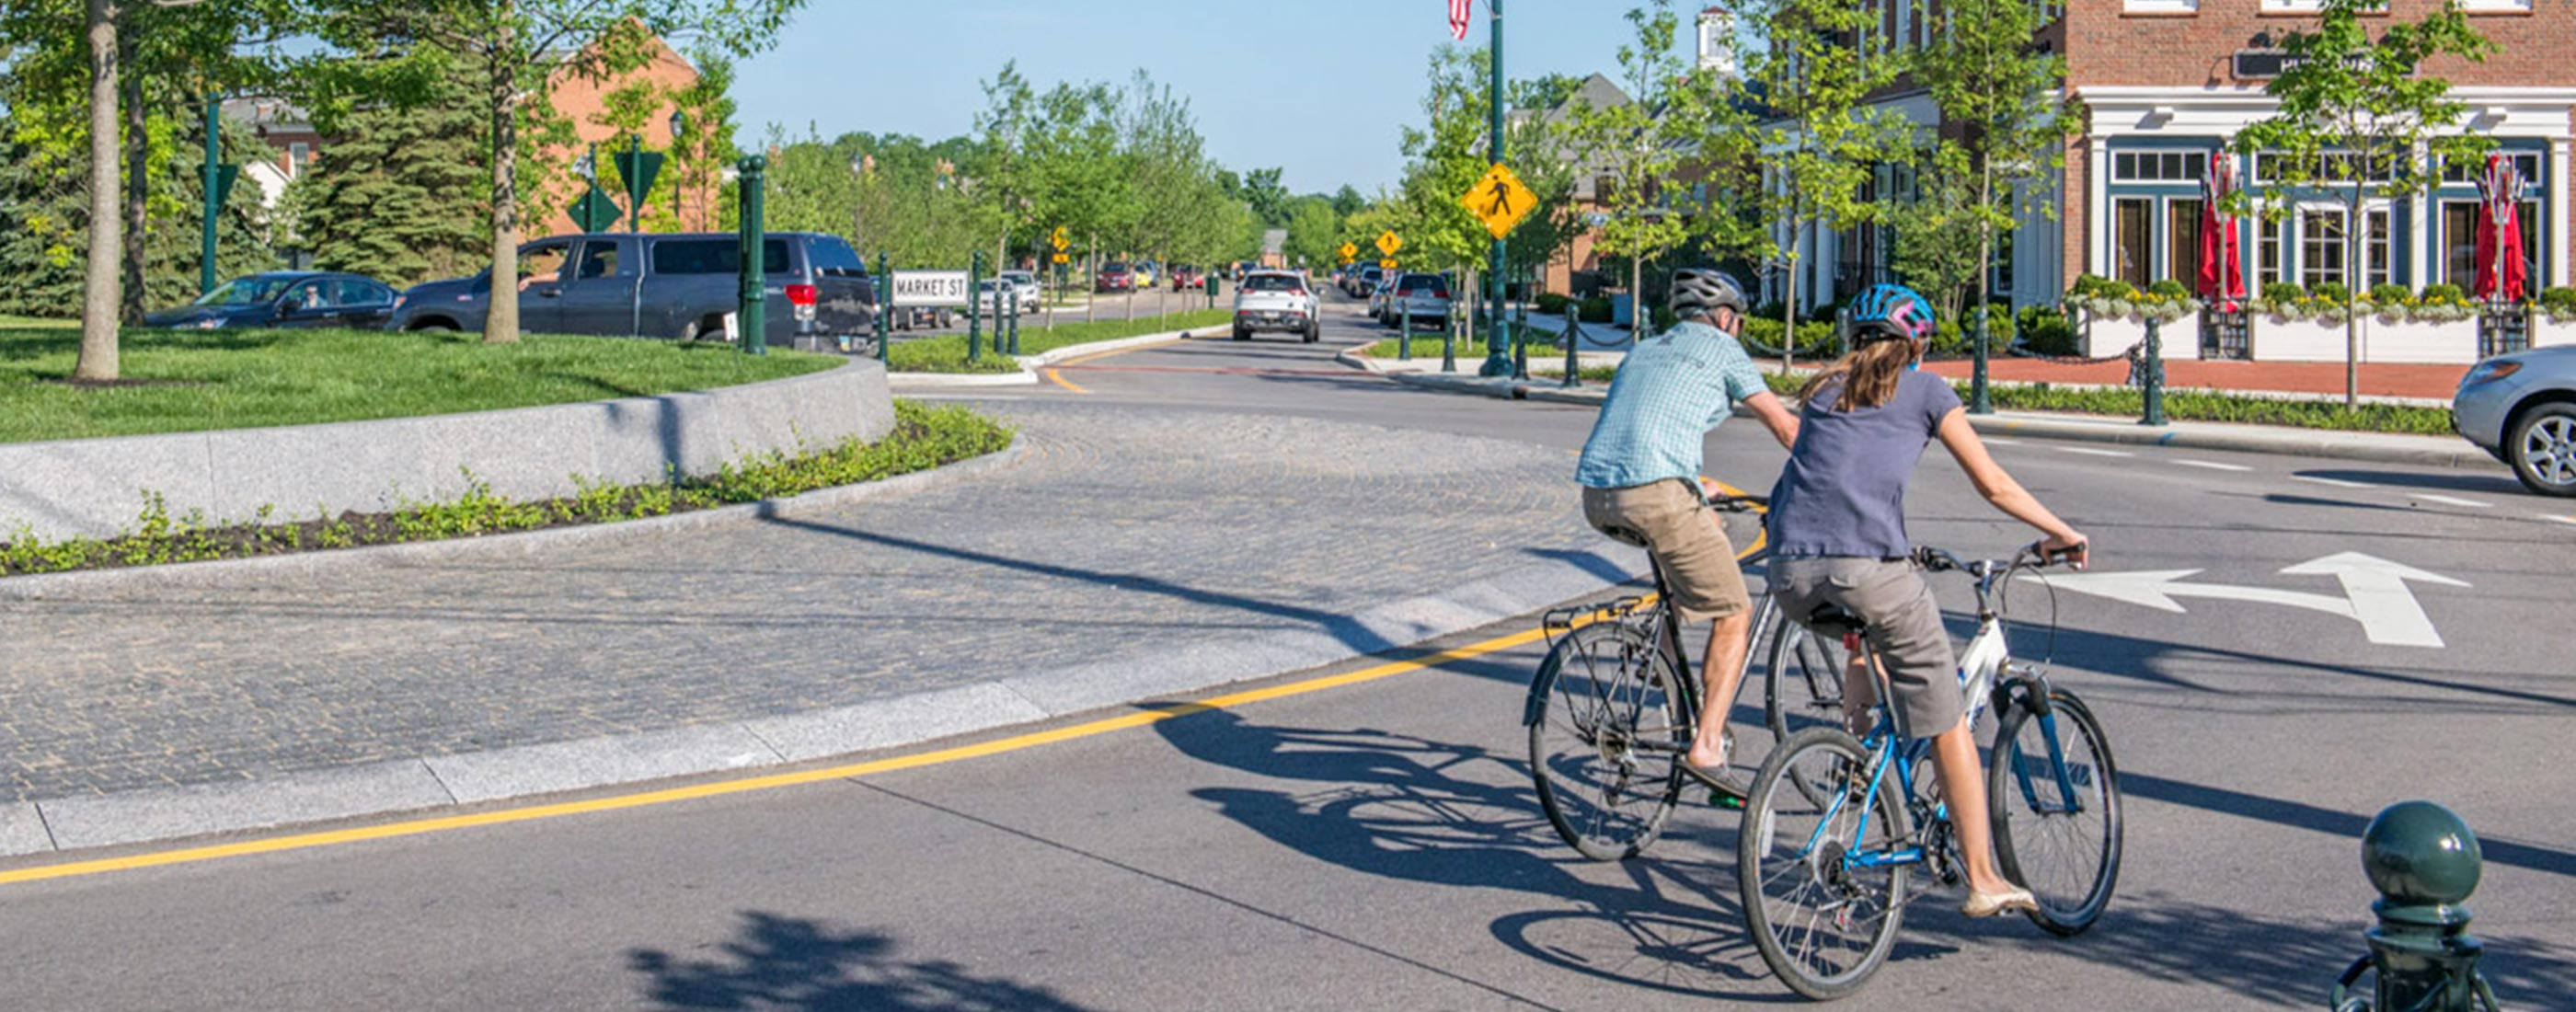 New Albany, Ohio's central roundabout, designed by OHM Advisors, provides safe bike lanes.